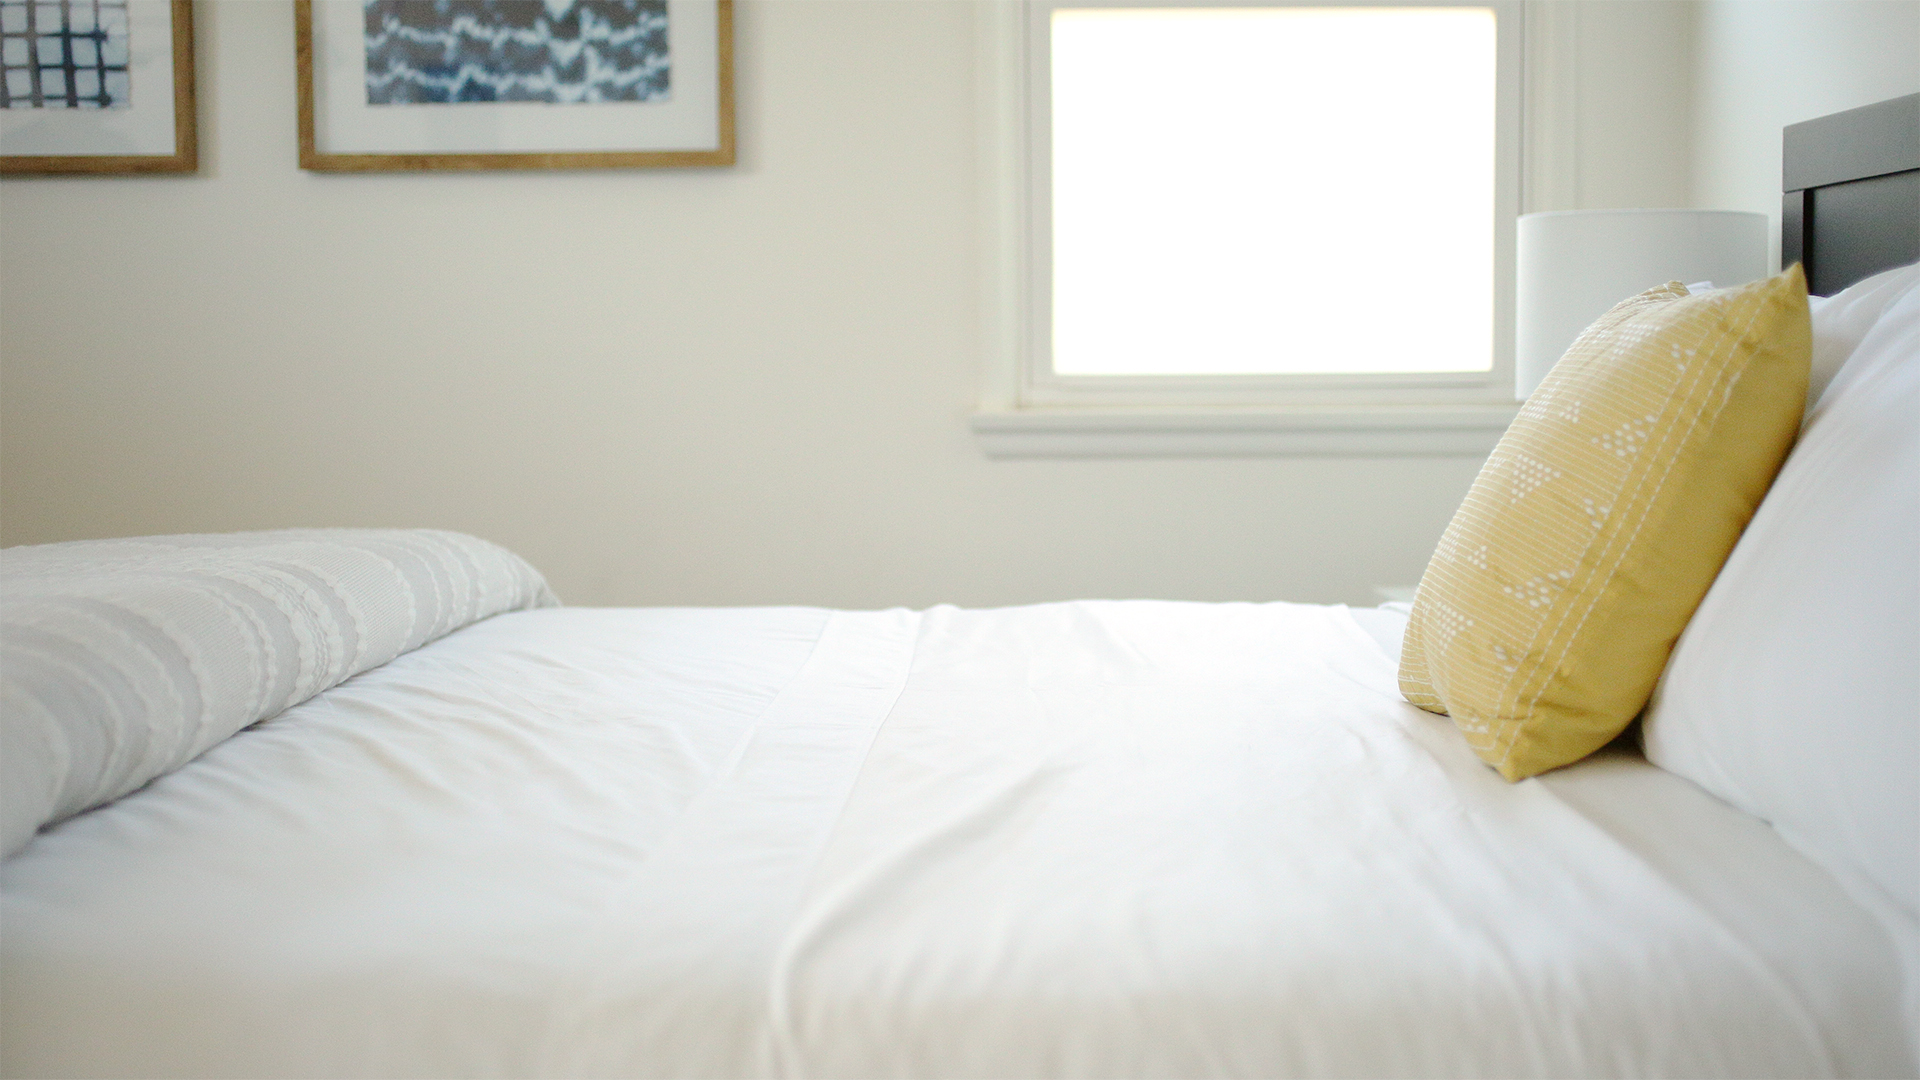 How to Choose the Right Sheets